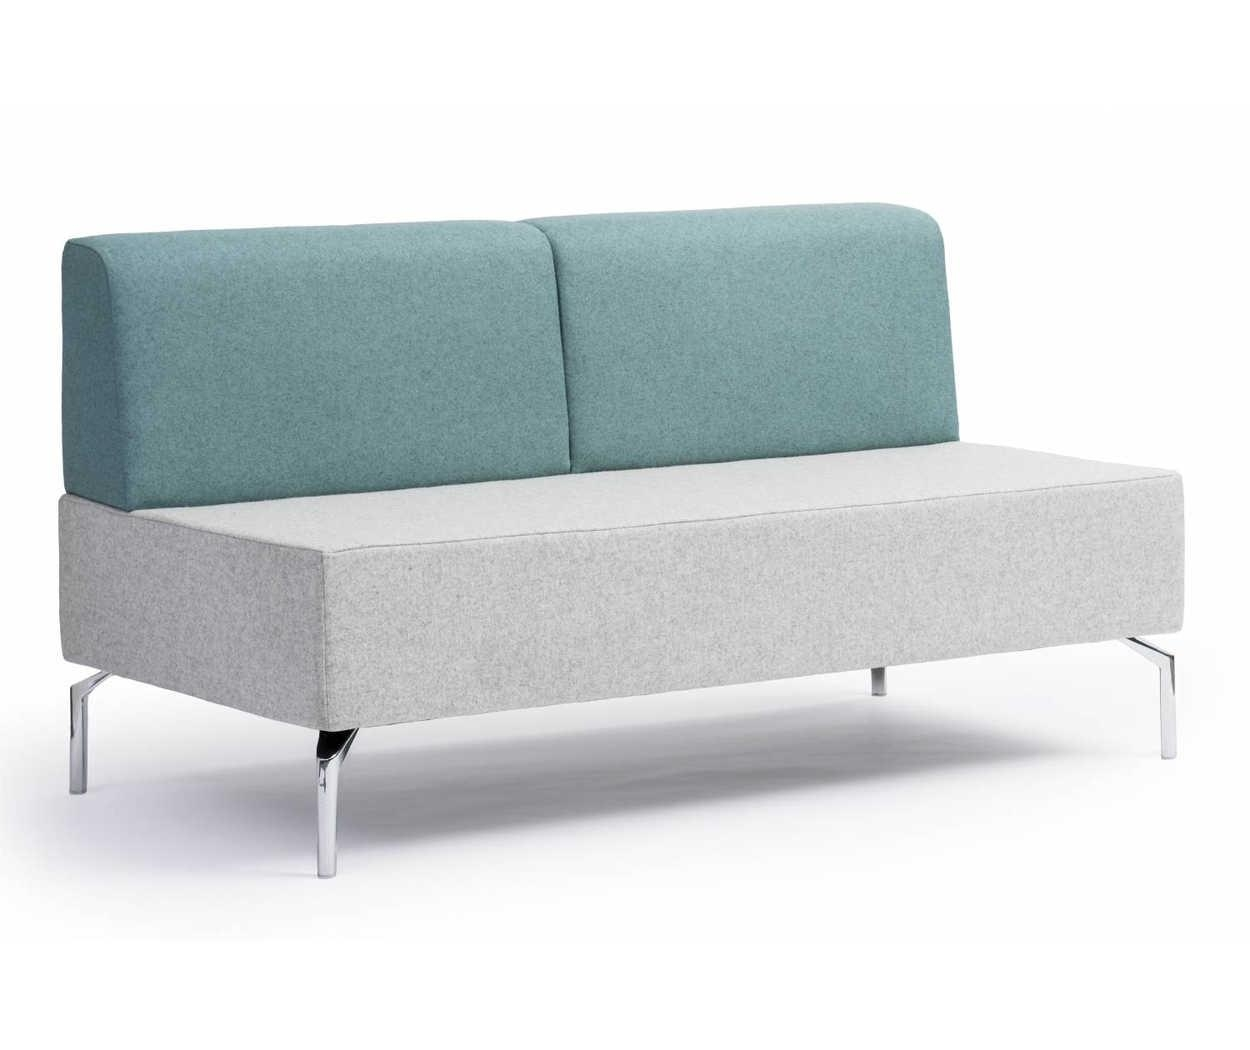 Skyline Modular Sofas In Skyline Sofas (Image 16 of 20)